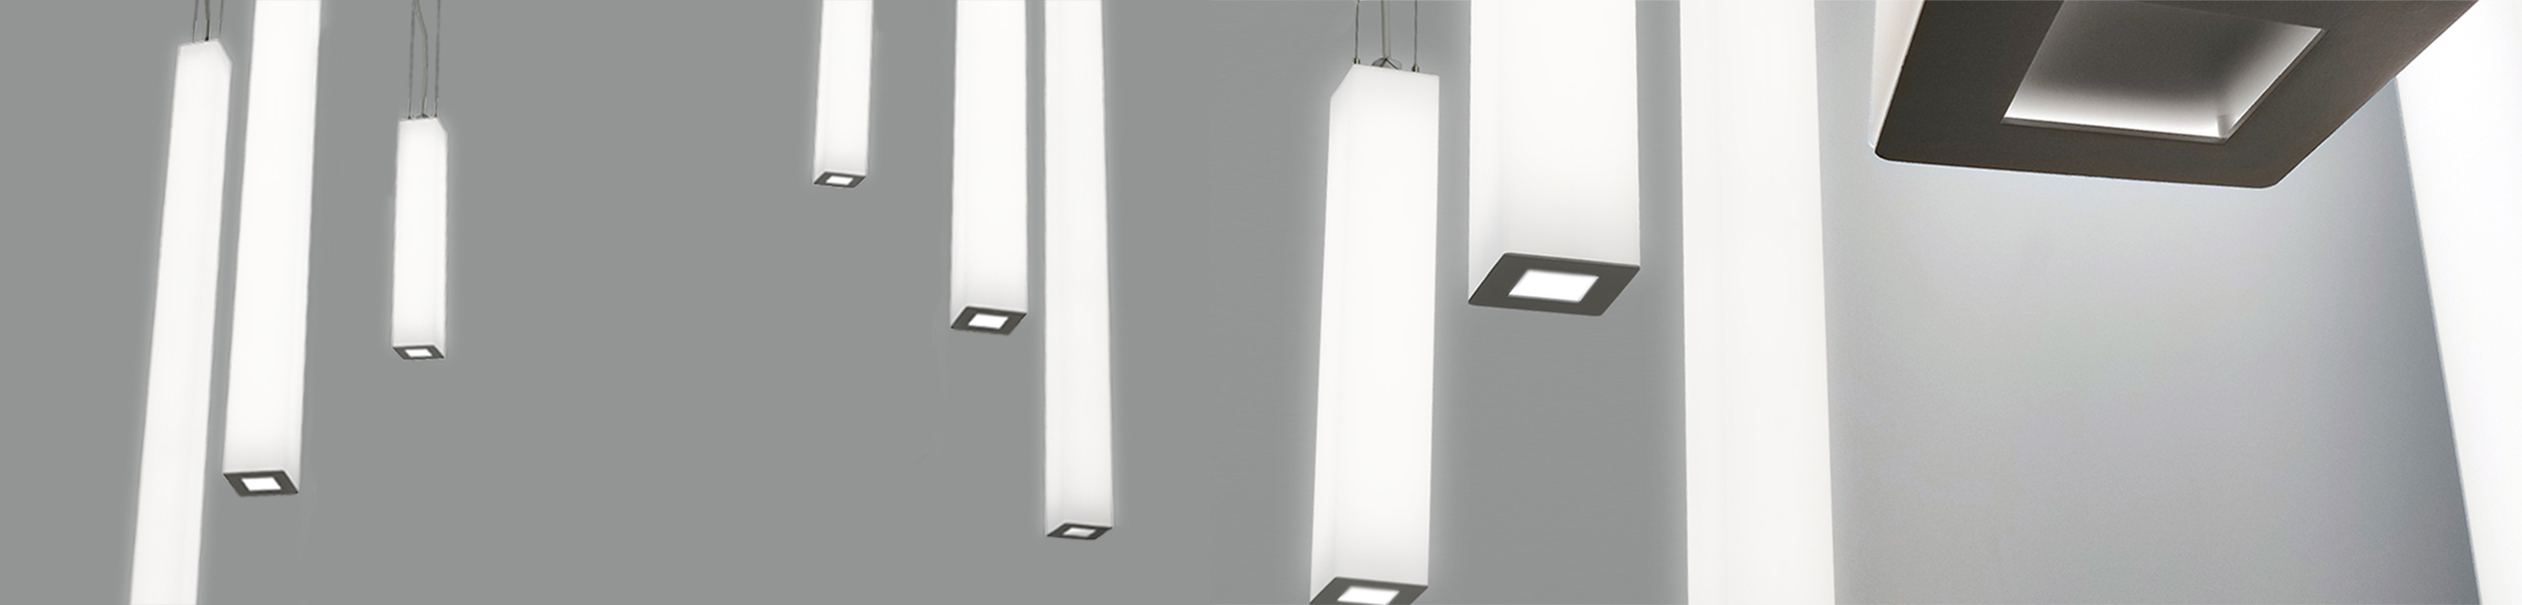 Close-up image of Sequence Square luminous cylinder pendants